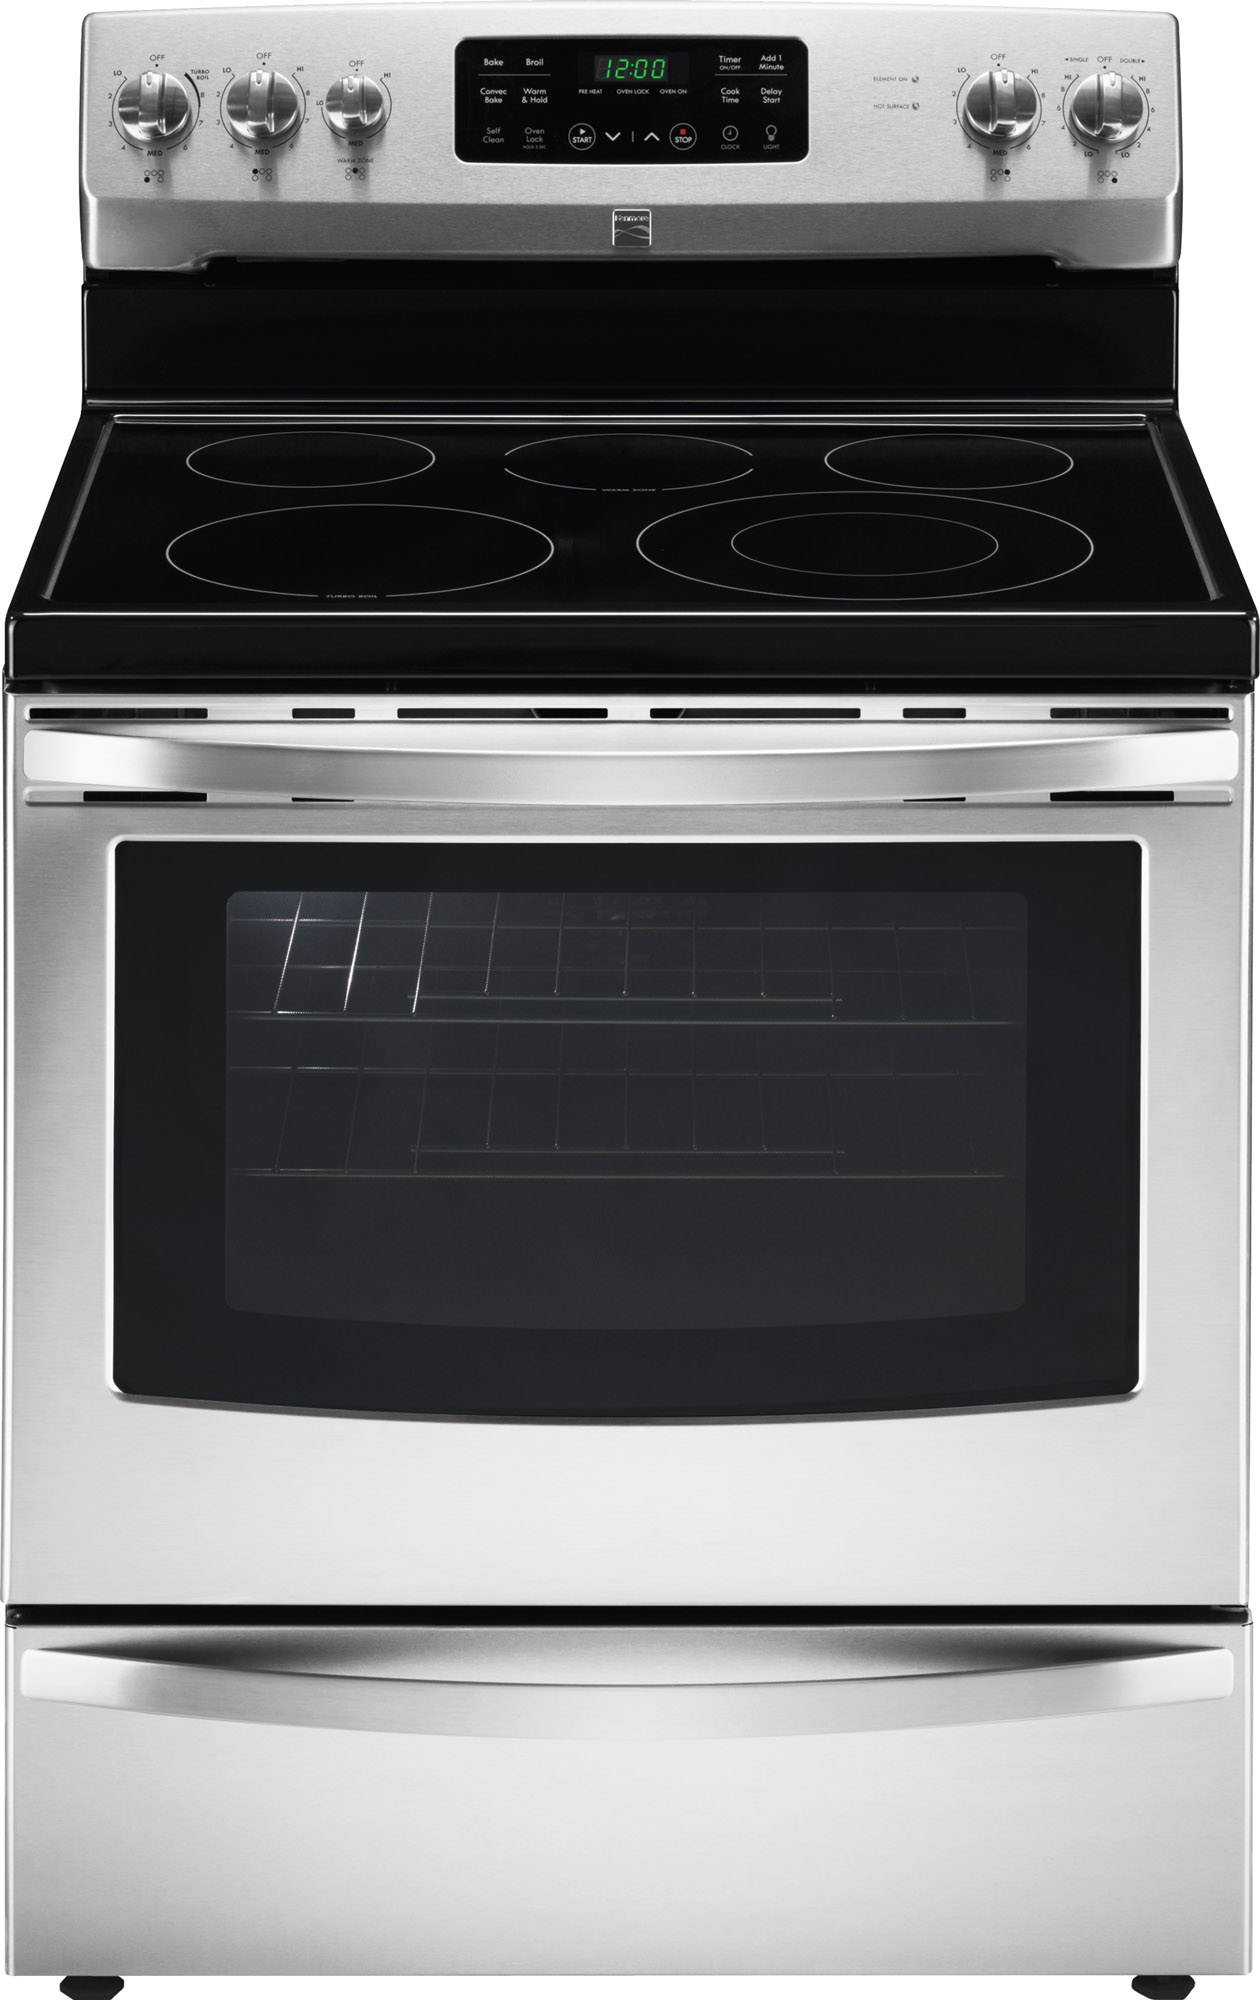 Kenmore Range Stove Oven Model 790 94193310 Parts